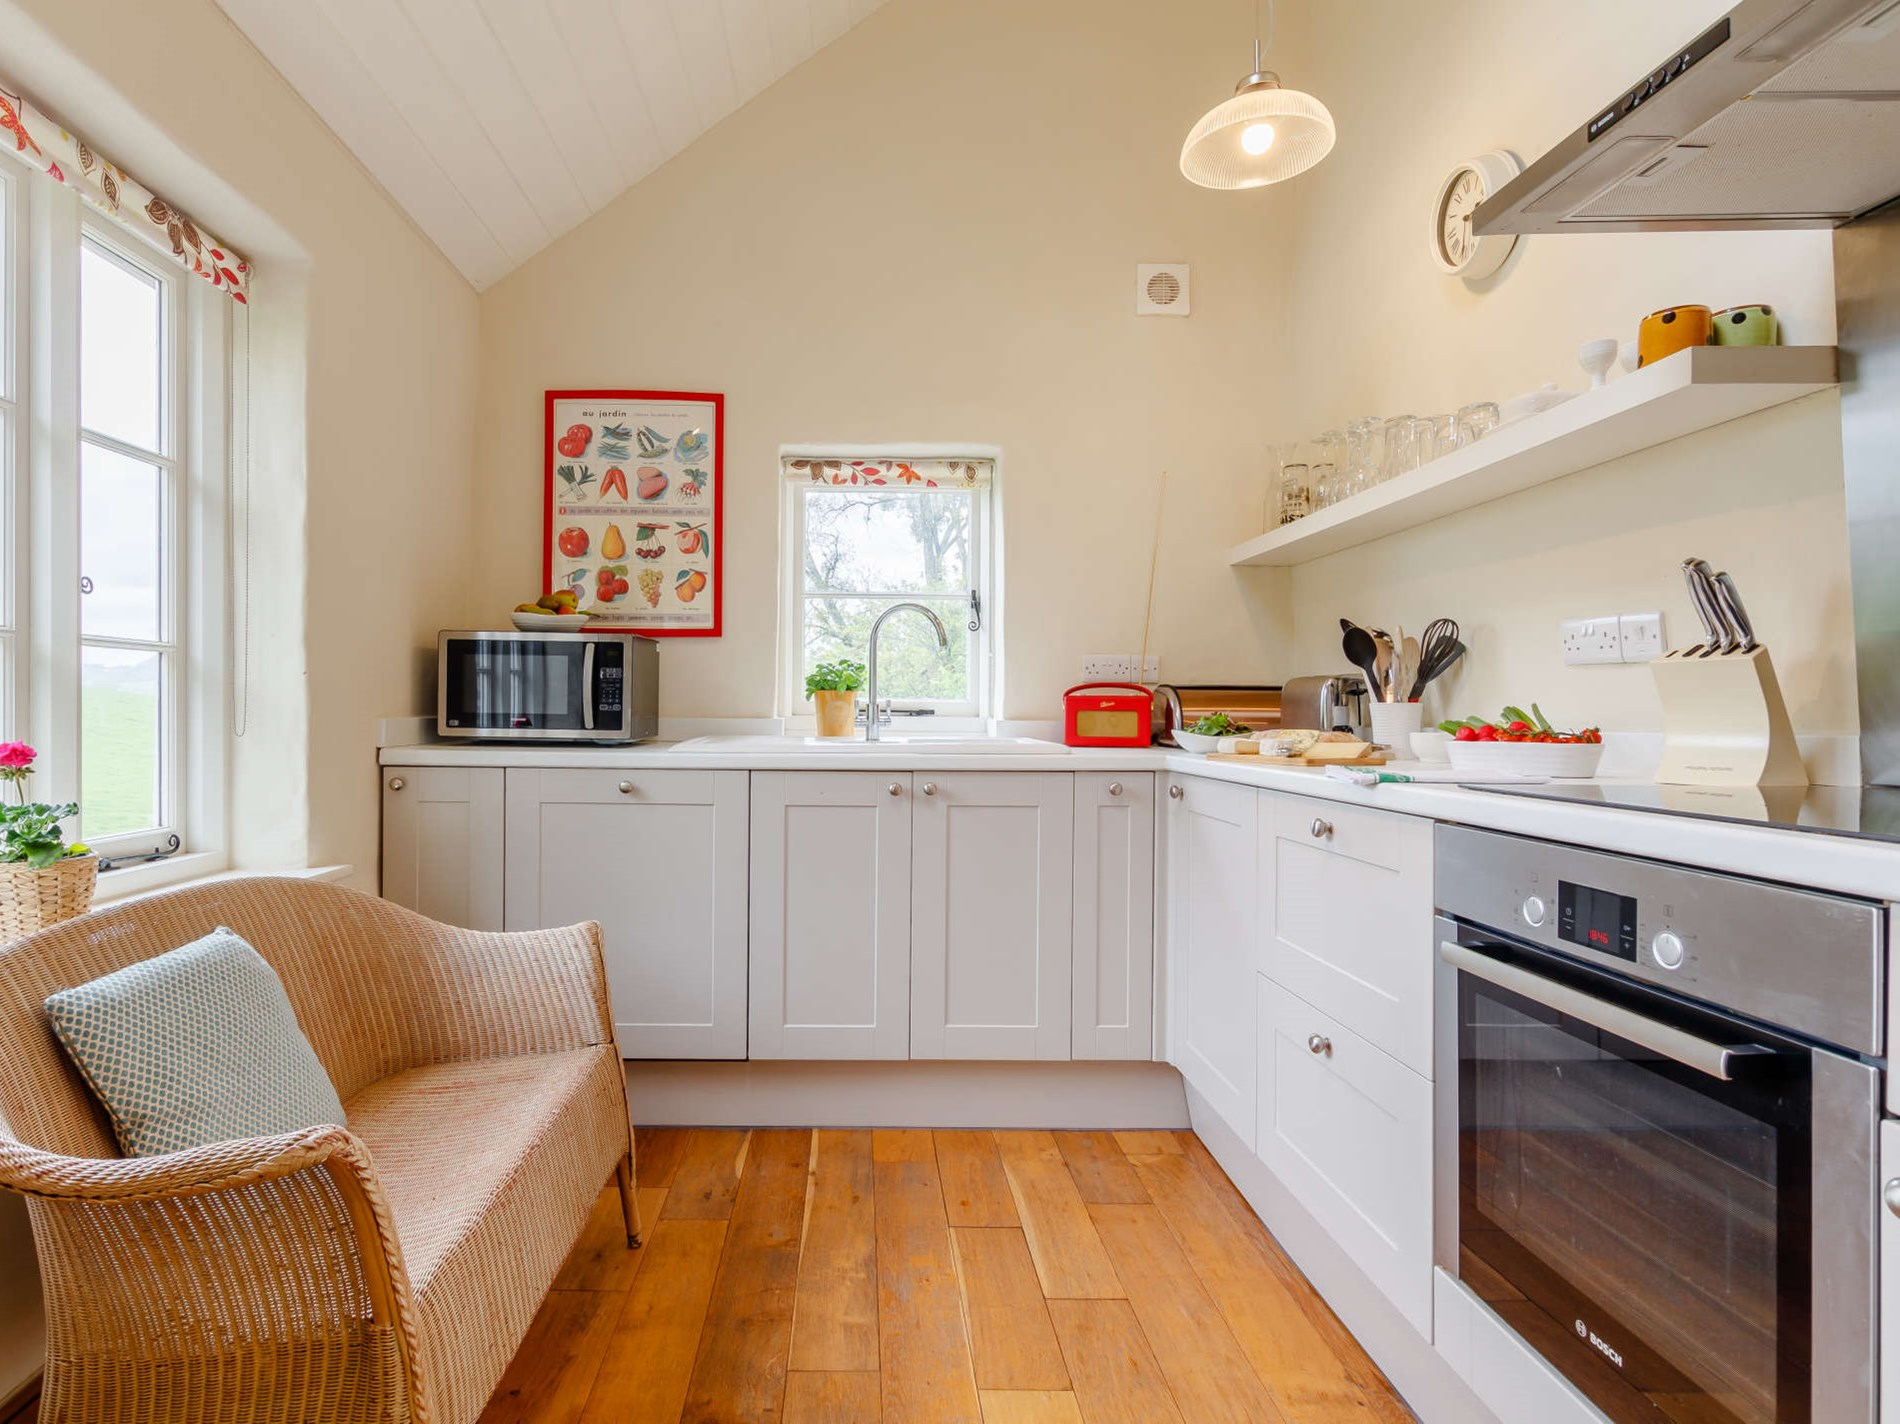 2 Bedroom Cottage in South Wales, Pembrokeshire and the South